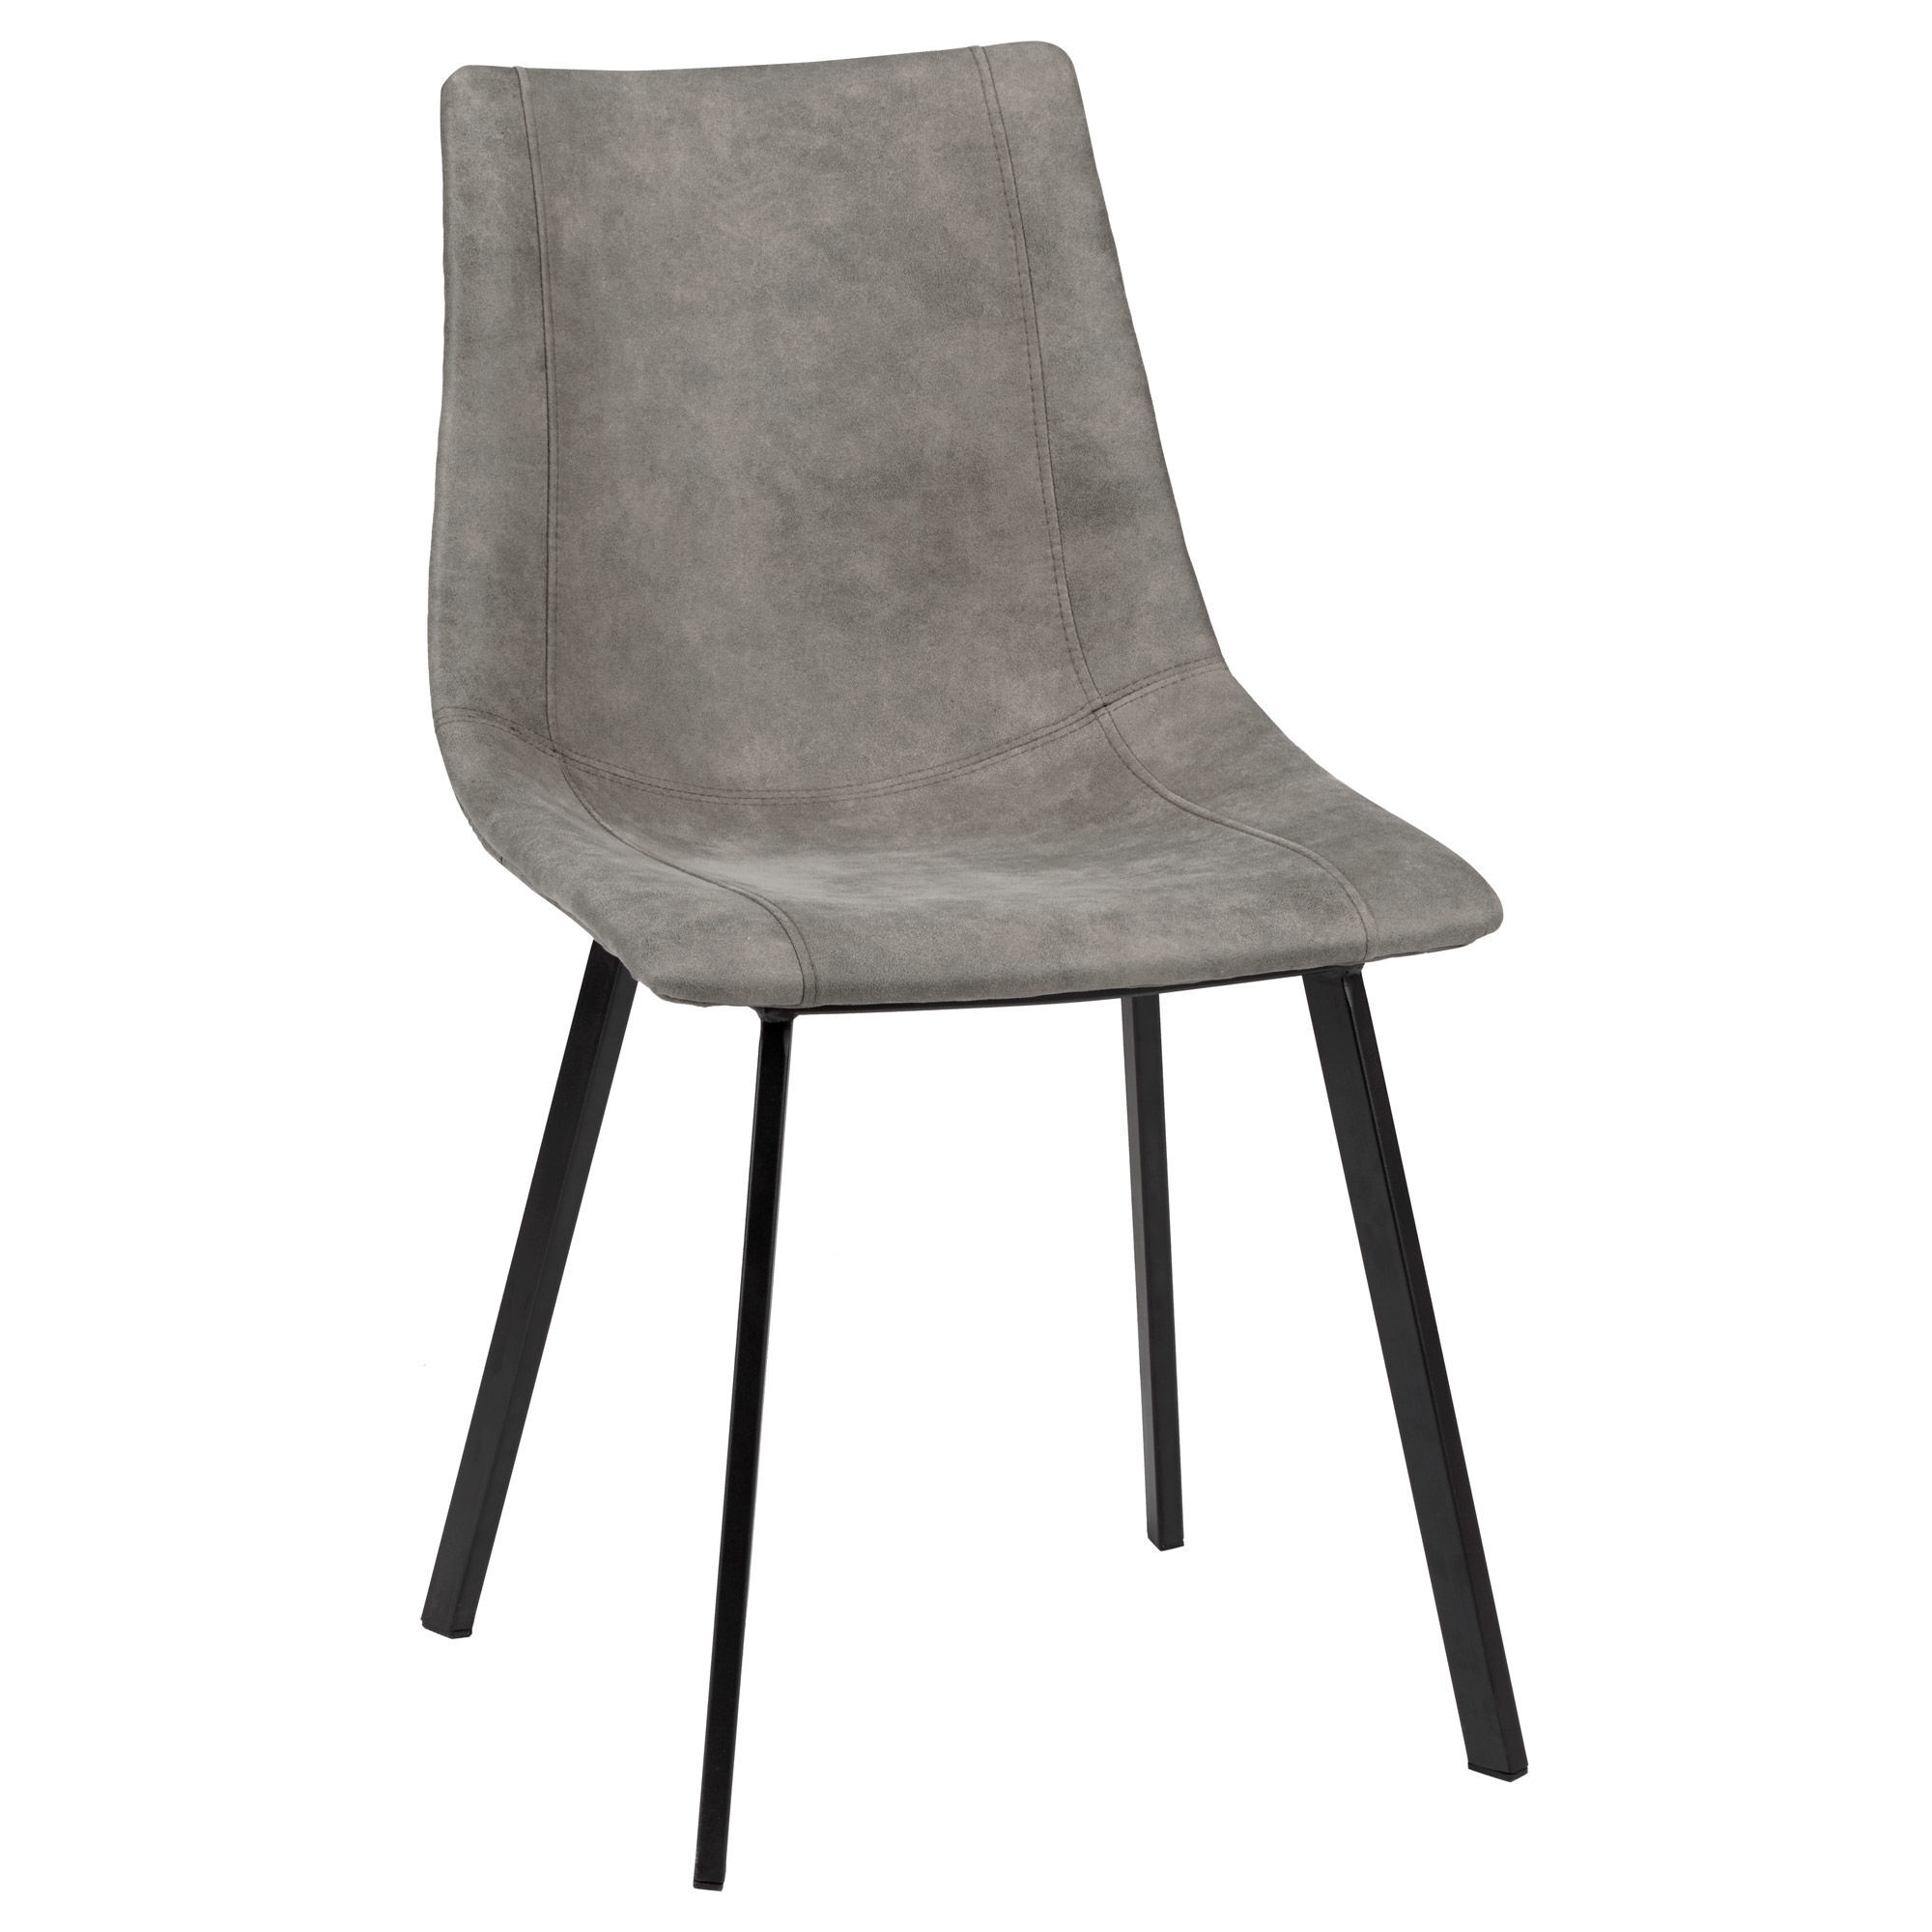 Metal And Leather Chair Textured Faux Leather And Metal Dining Chair Bouclair